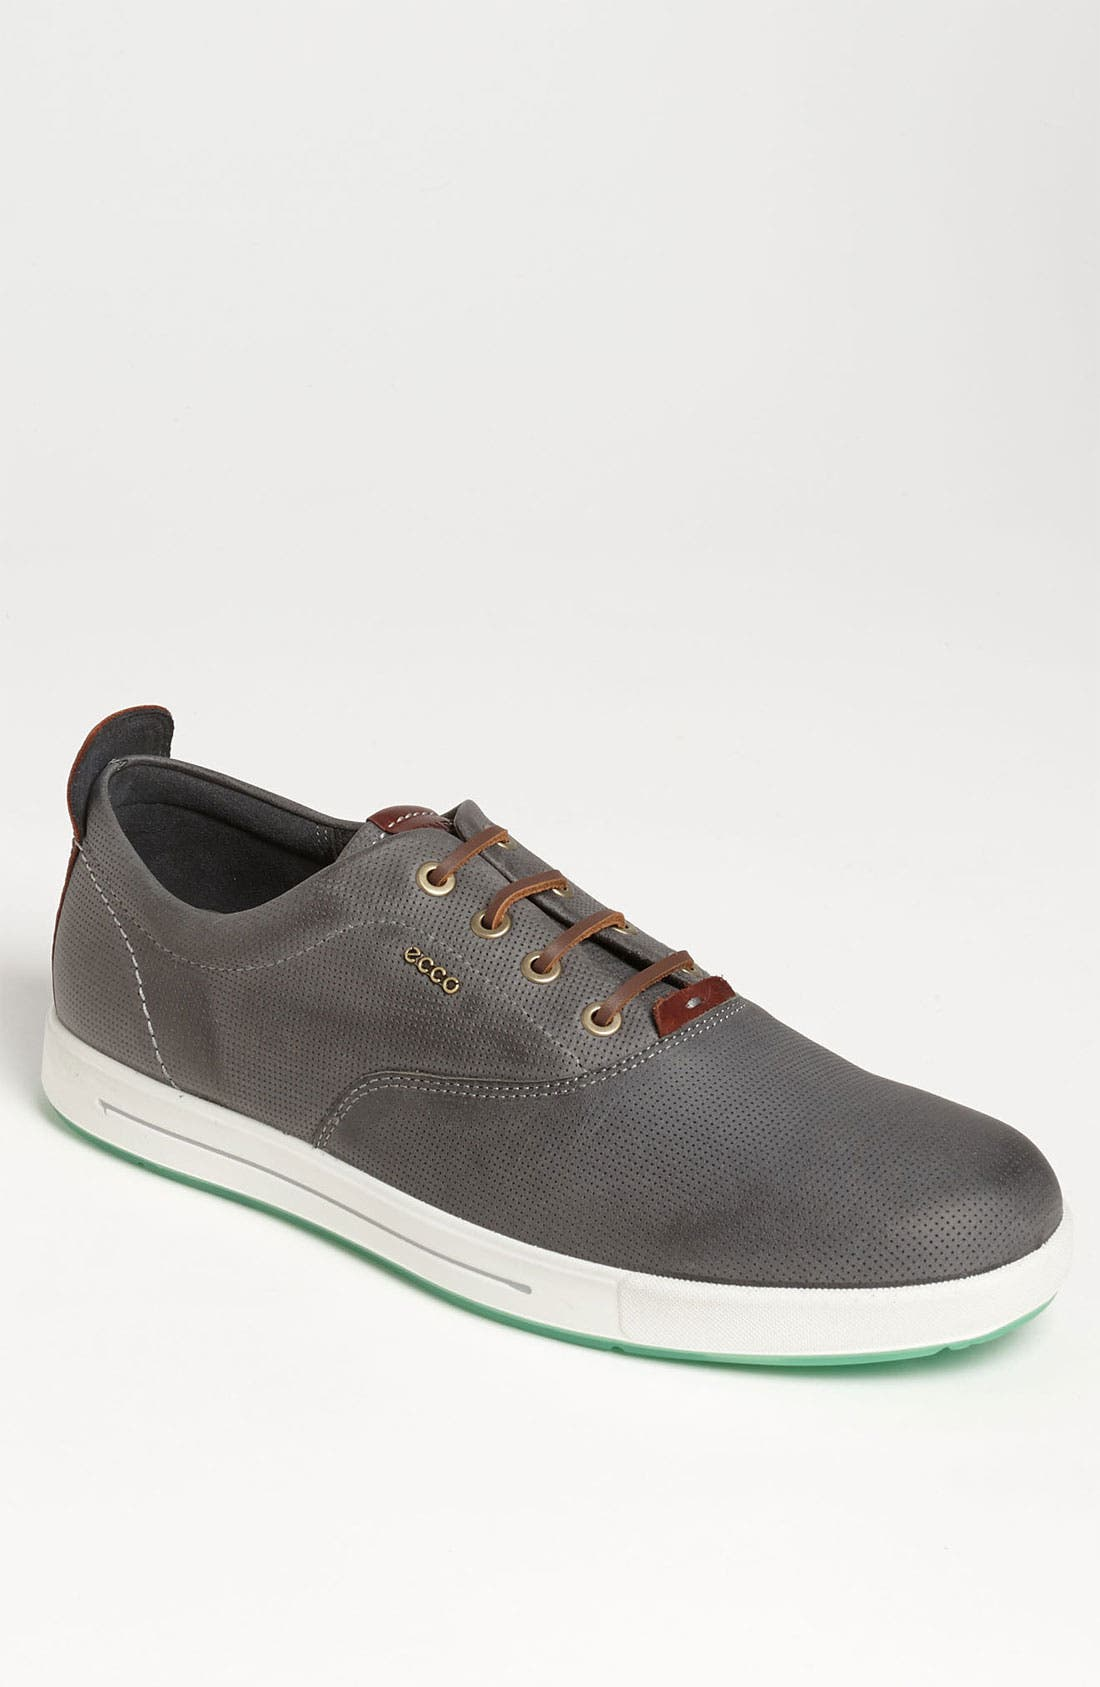 Alternate Image 1 Selected - ECCO 'Androw' Sneaker